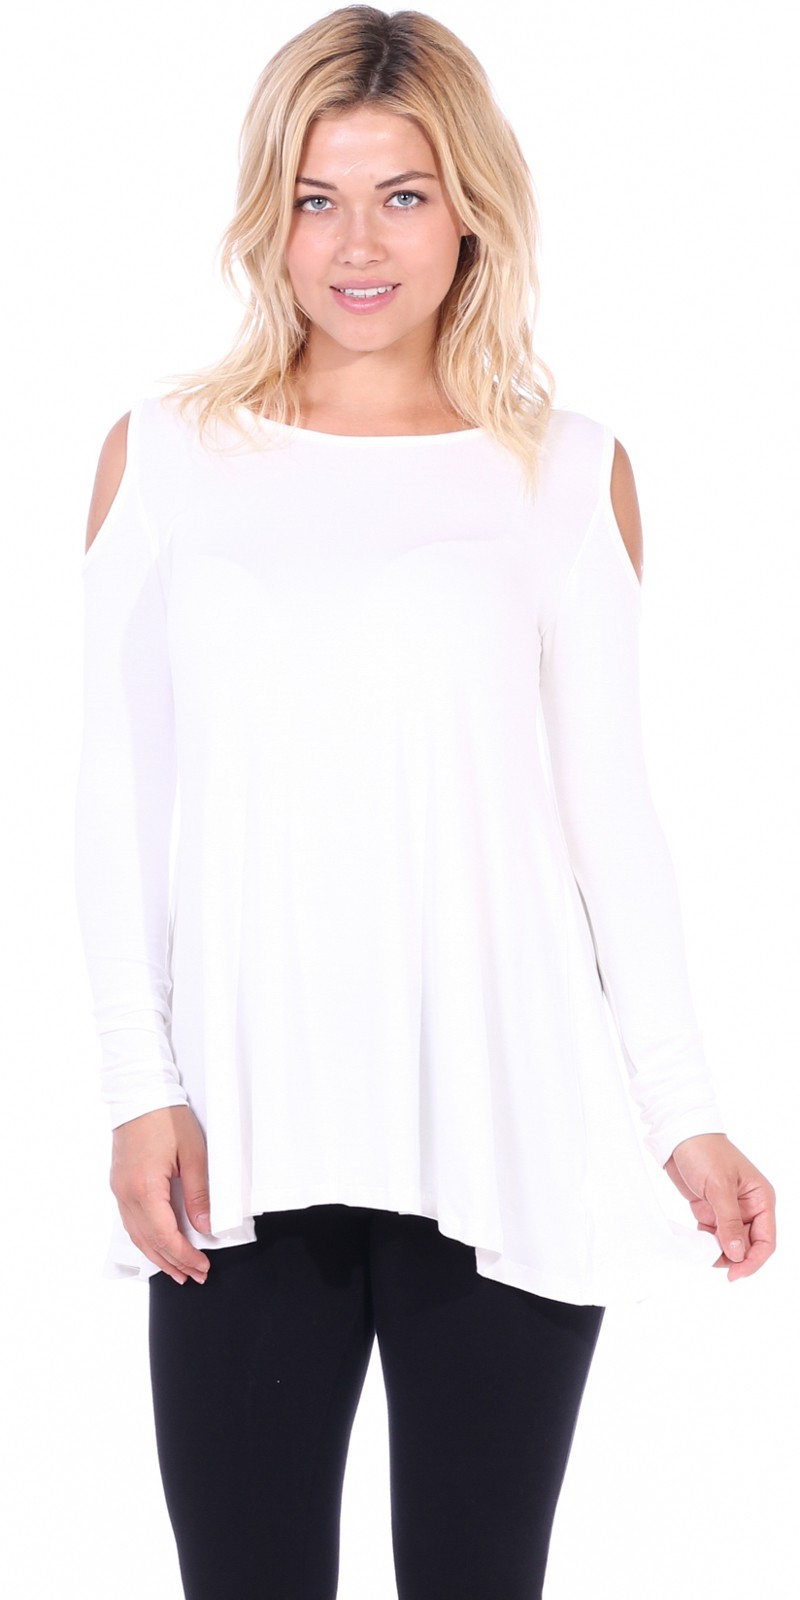 68e528e8f71 Open Cut Out Cold Shoulder Tunic Top for Women - Long Sleeve Top for  Leggings -